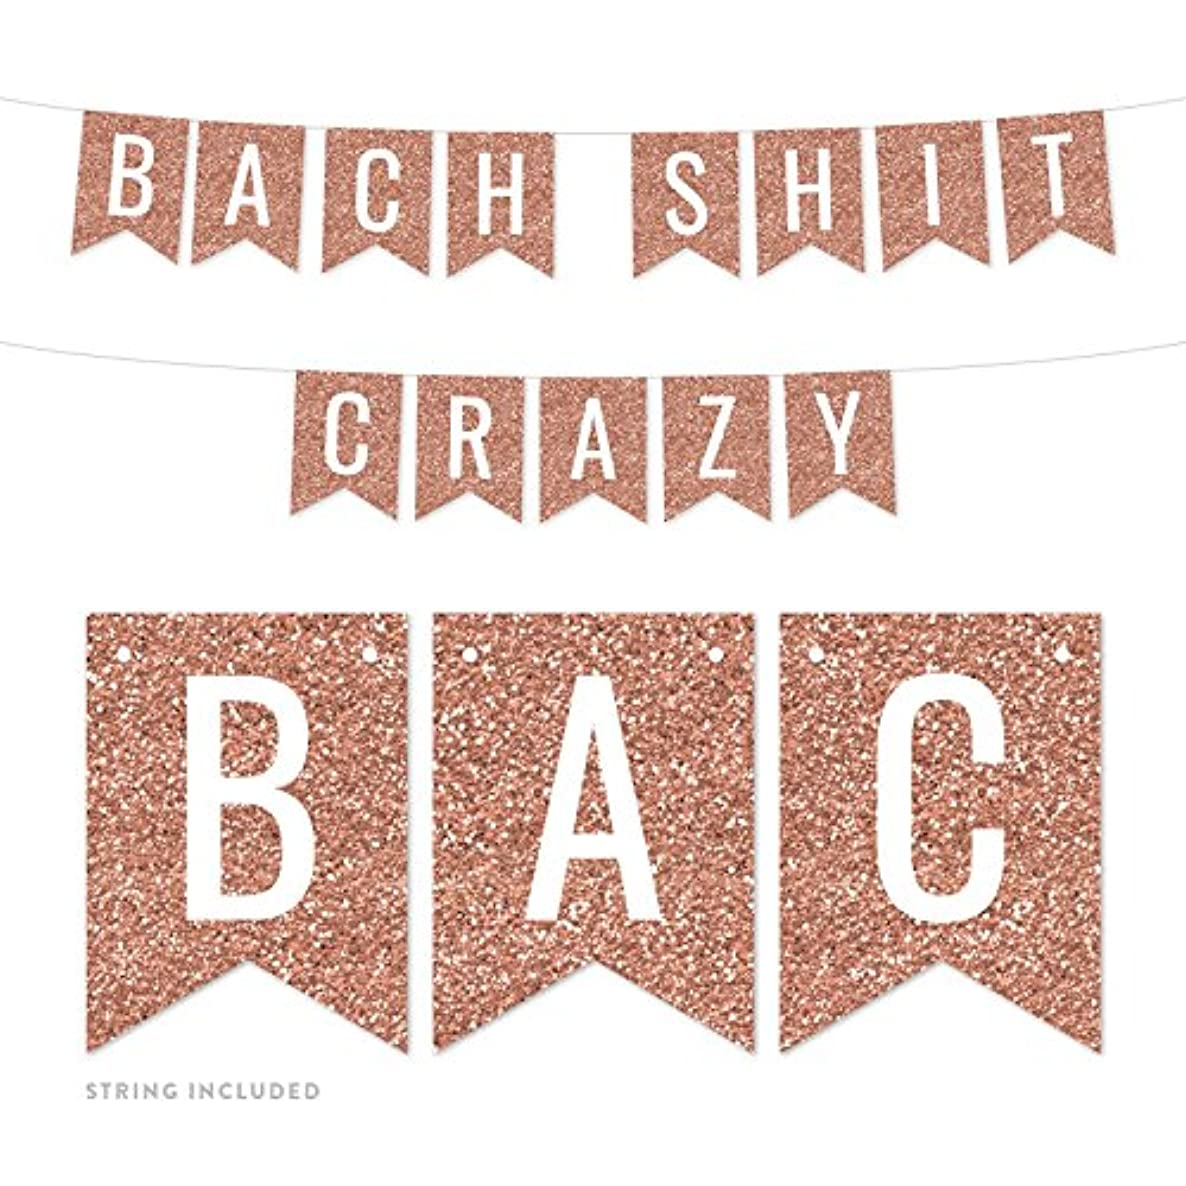 Andaz Press Rose Gold Faux Glitter Background Bridal Shower Bachelorette Party Banner Decorations, Bach Shit Crazy, Approx 5-Feet, 1-Set, Champagne Colored Hanging Pennant Decor